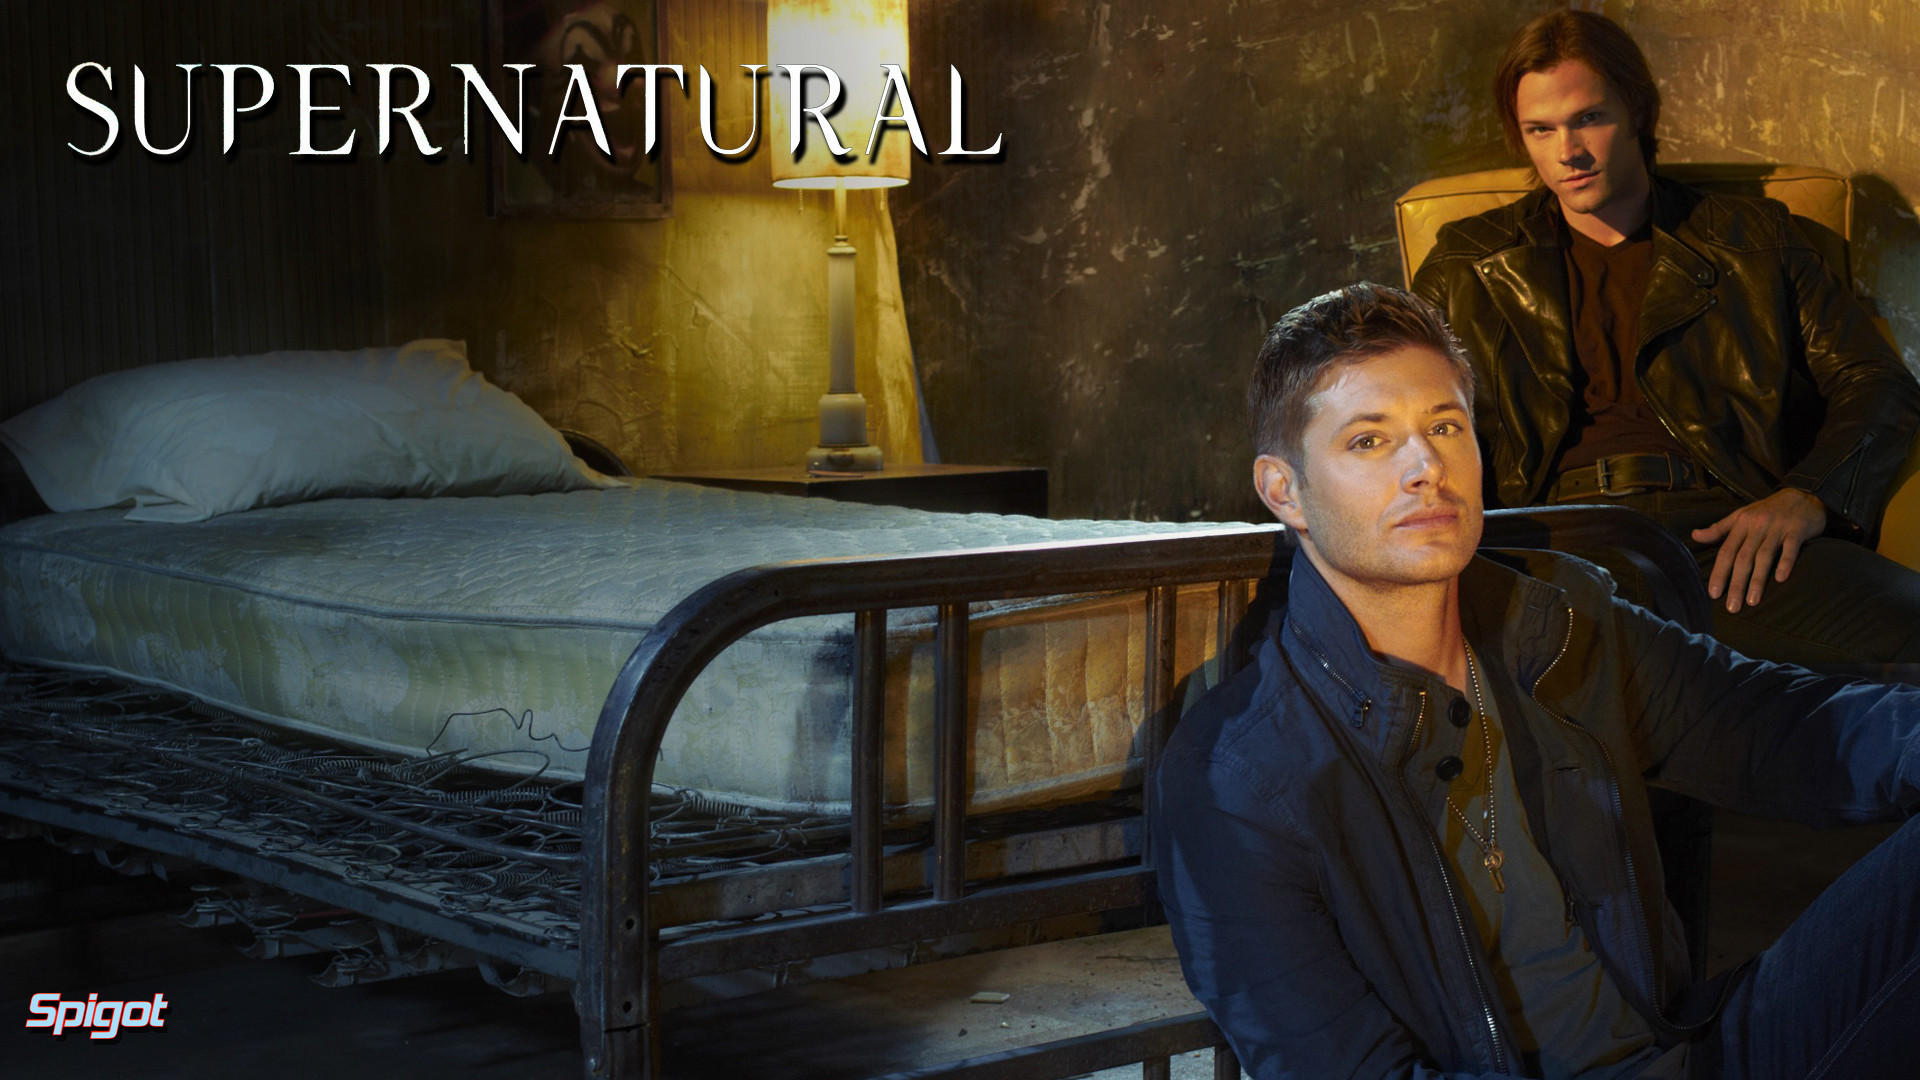 1920x1080 Here's a new wallpaper I did for the fantastic show Supernatural staring  Jared Padalecki (Sam Winchester) & Jensen Ackles (Dean Winchester), this  show just ...